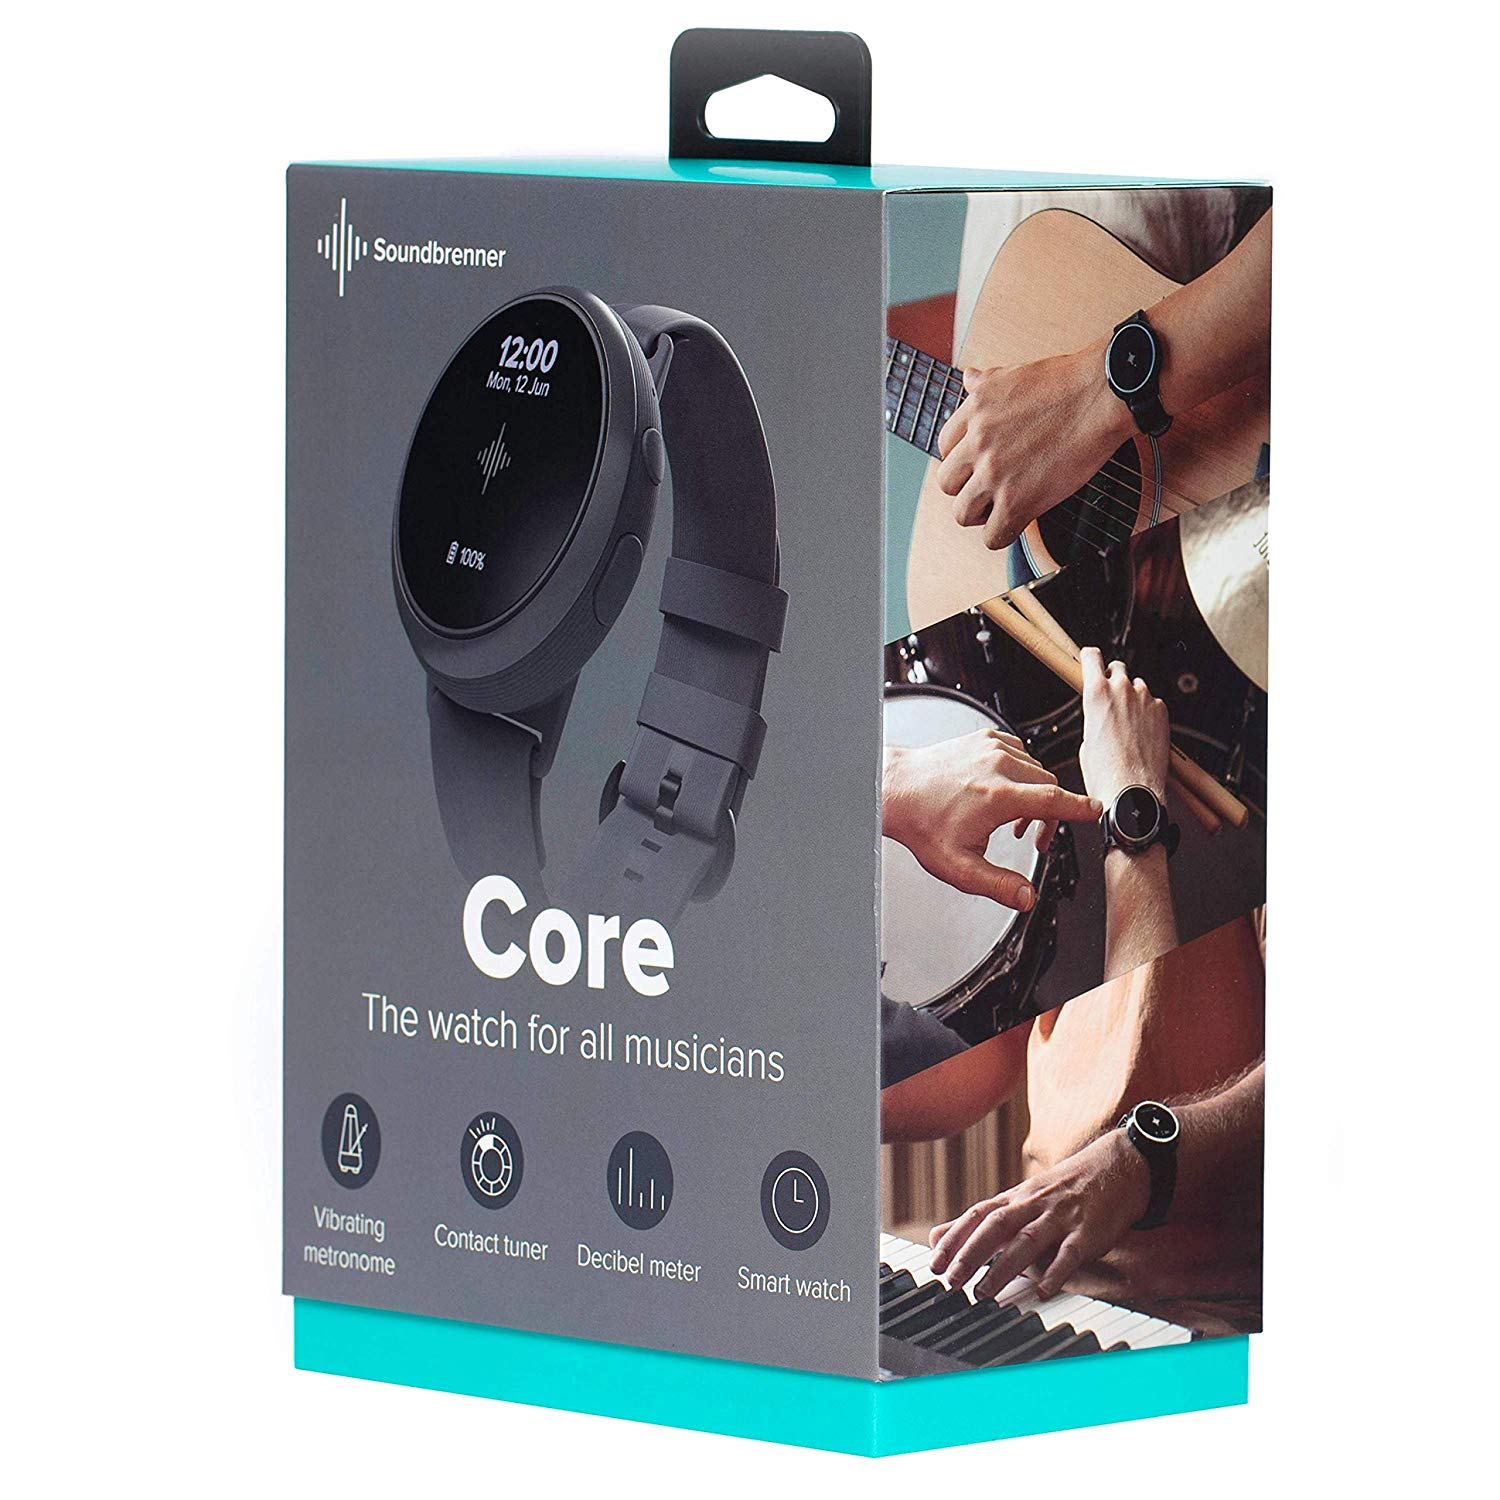 The Package The Soundbrenner Core 4-in-1 Wearable Music Tool come in